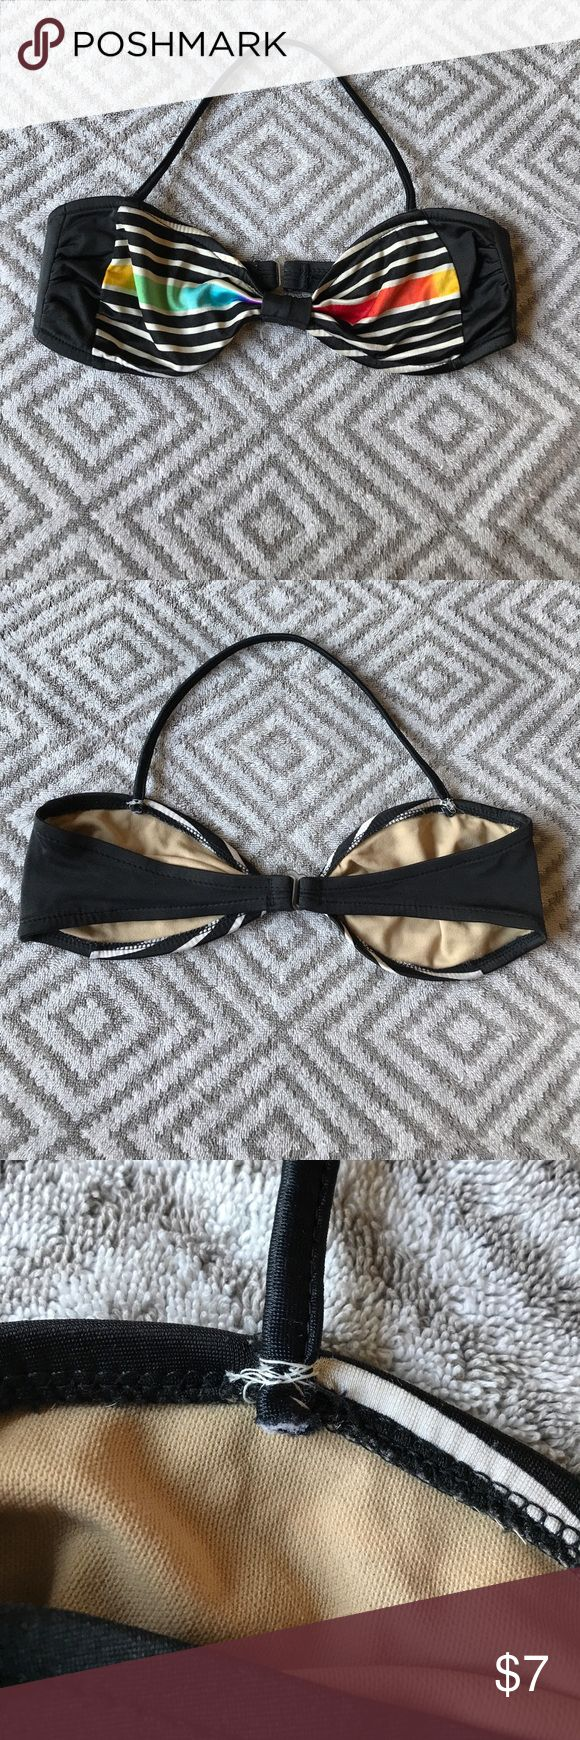 Vintage 80s Bandeau Bikini Top!! Cute vintage bikini top!! The straps have been shortened and reinforced (shown in photos), so I priced it cheap- but the straps seem really secure:).  Strap length is 15-17 inches (stretchy material), so maybe measure with a string to see if this length will work for you. So maybe this would fit petite sizes best? Fits 34-36 A or B. Just the bikini top, no bottom Vintage Swim Bikinis